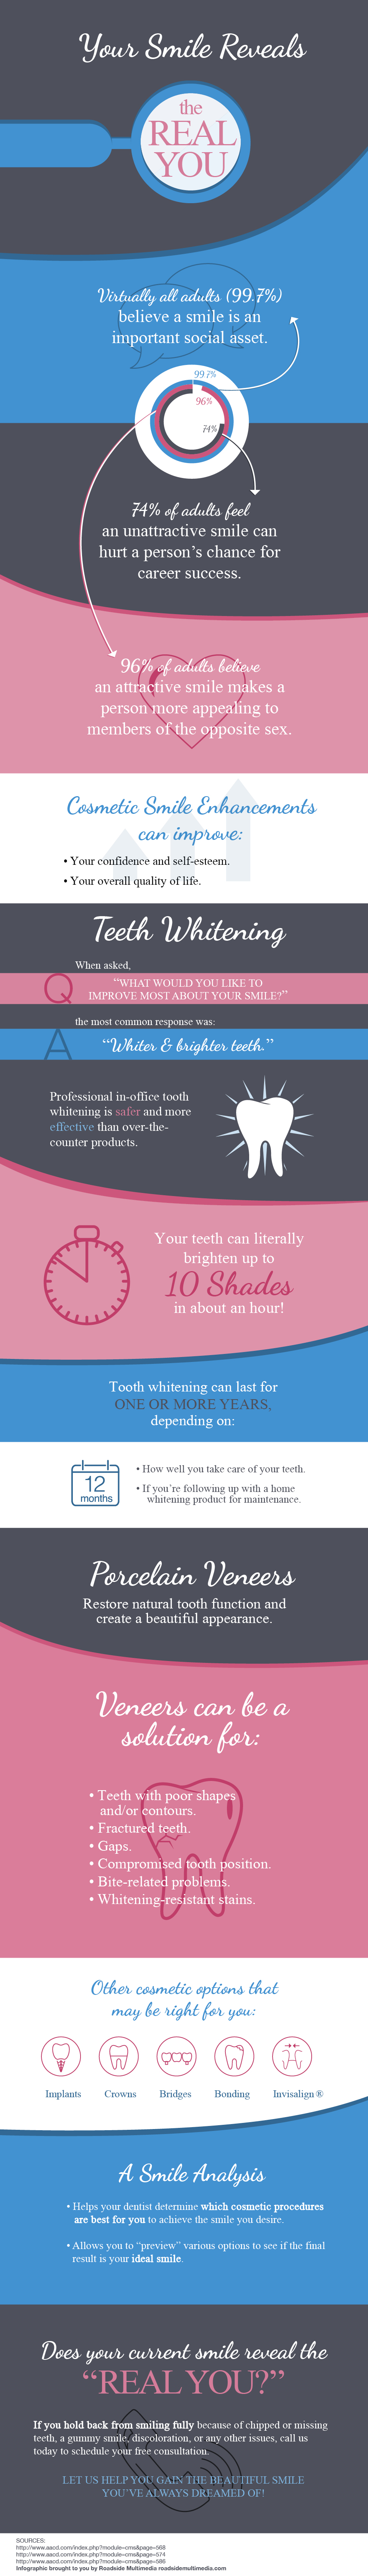 does-your-smile-reveal-the-real-you-centennial-dental